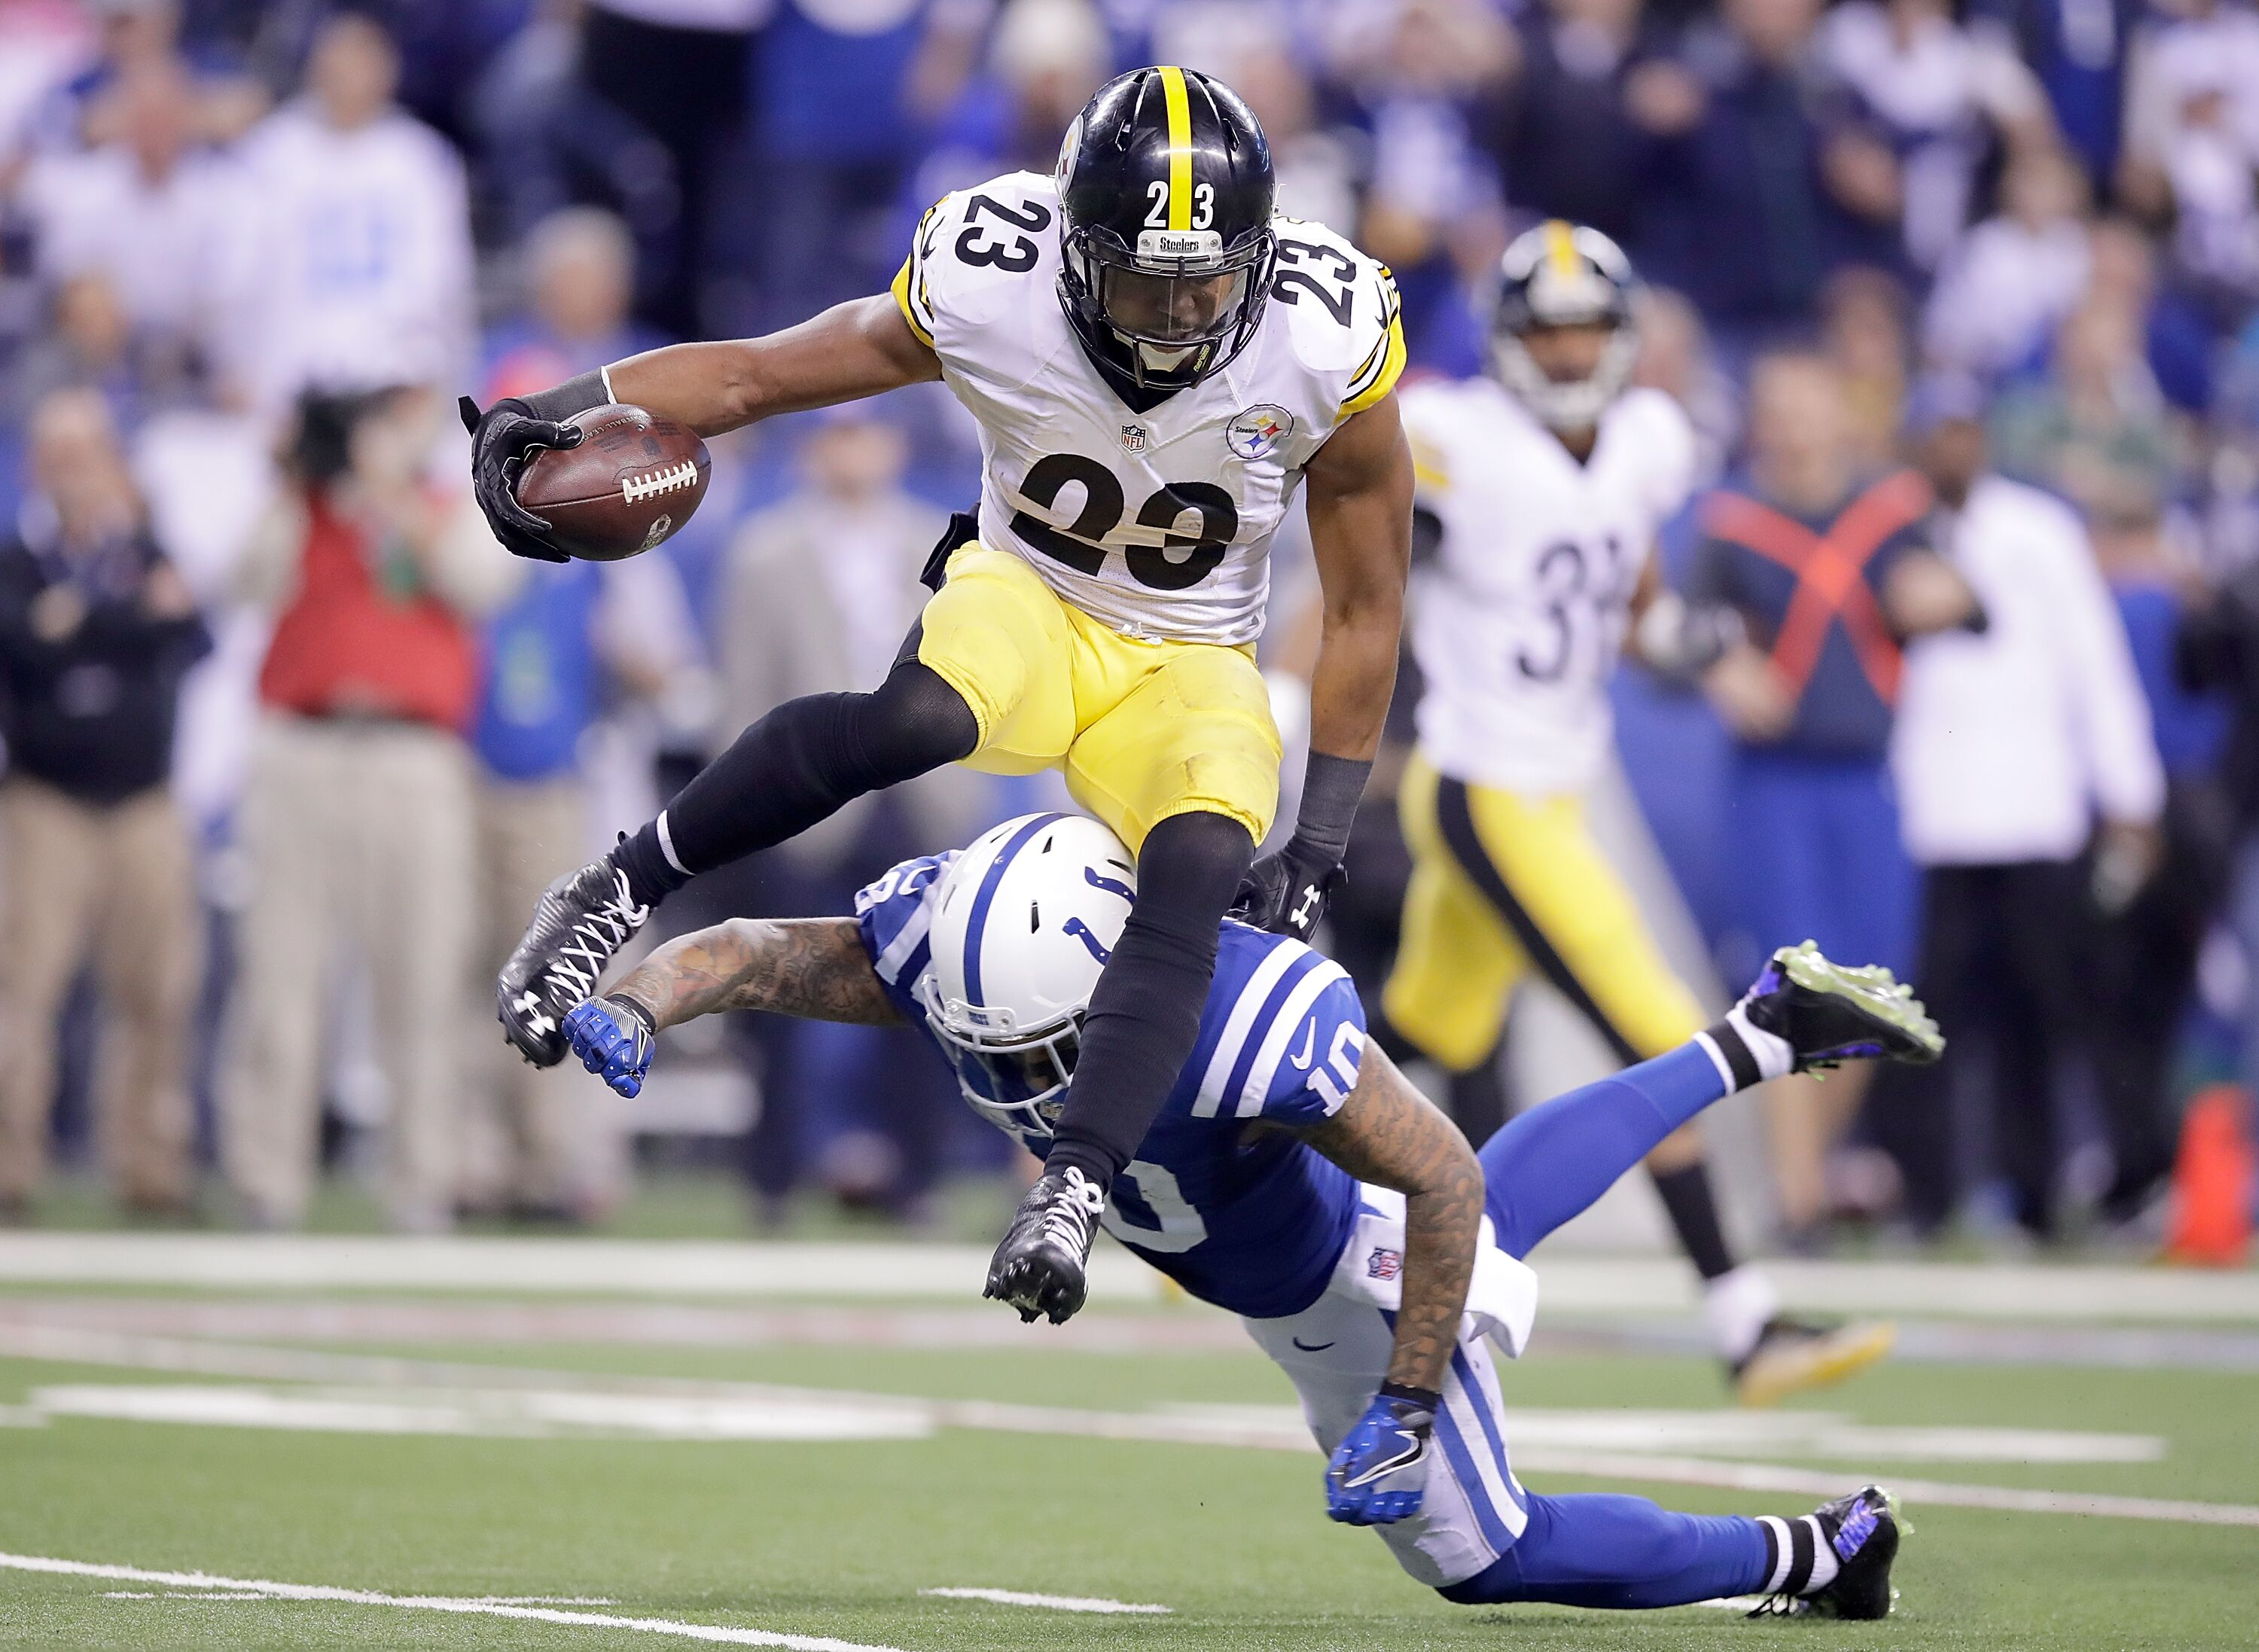 625645602-pittsburgh-steelers-v-indianapolis-colts.jpg